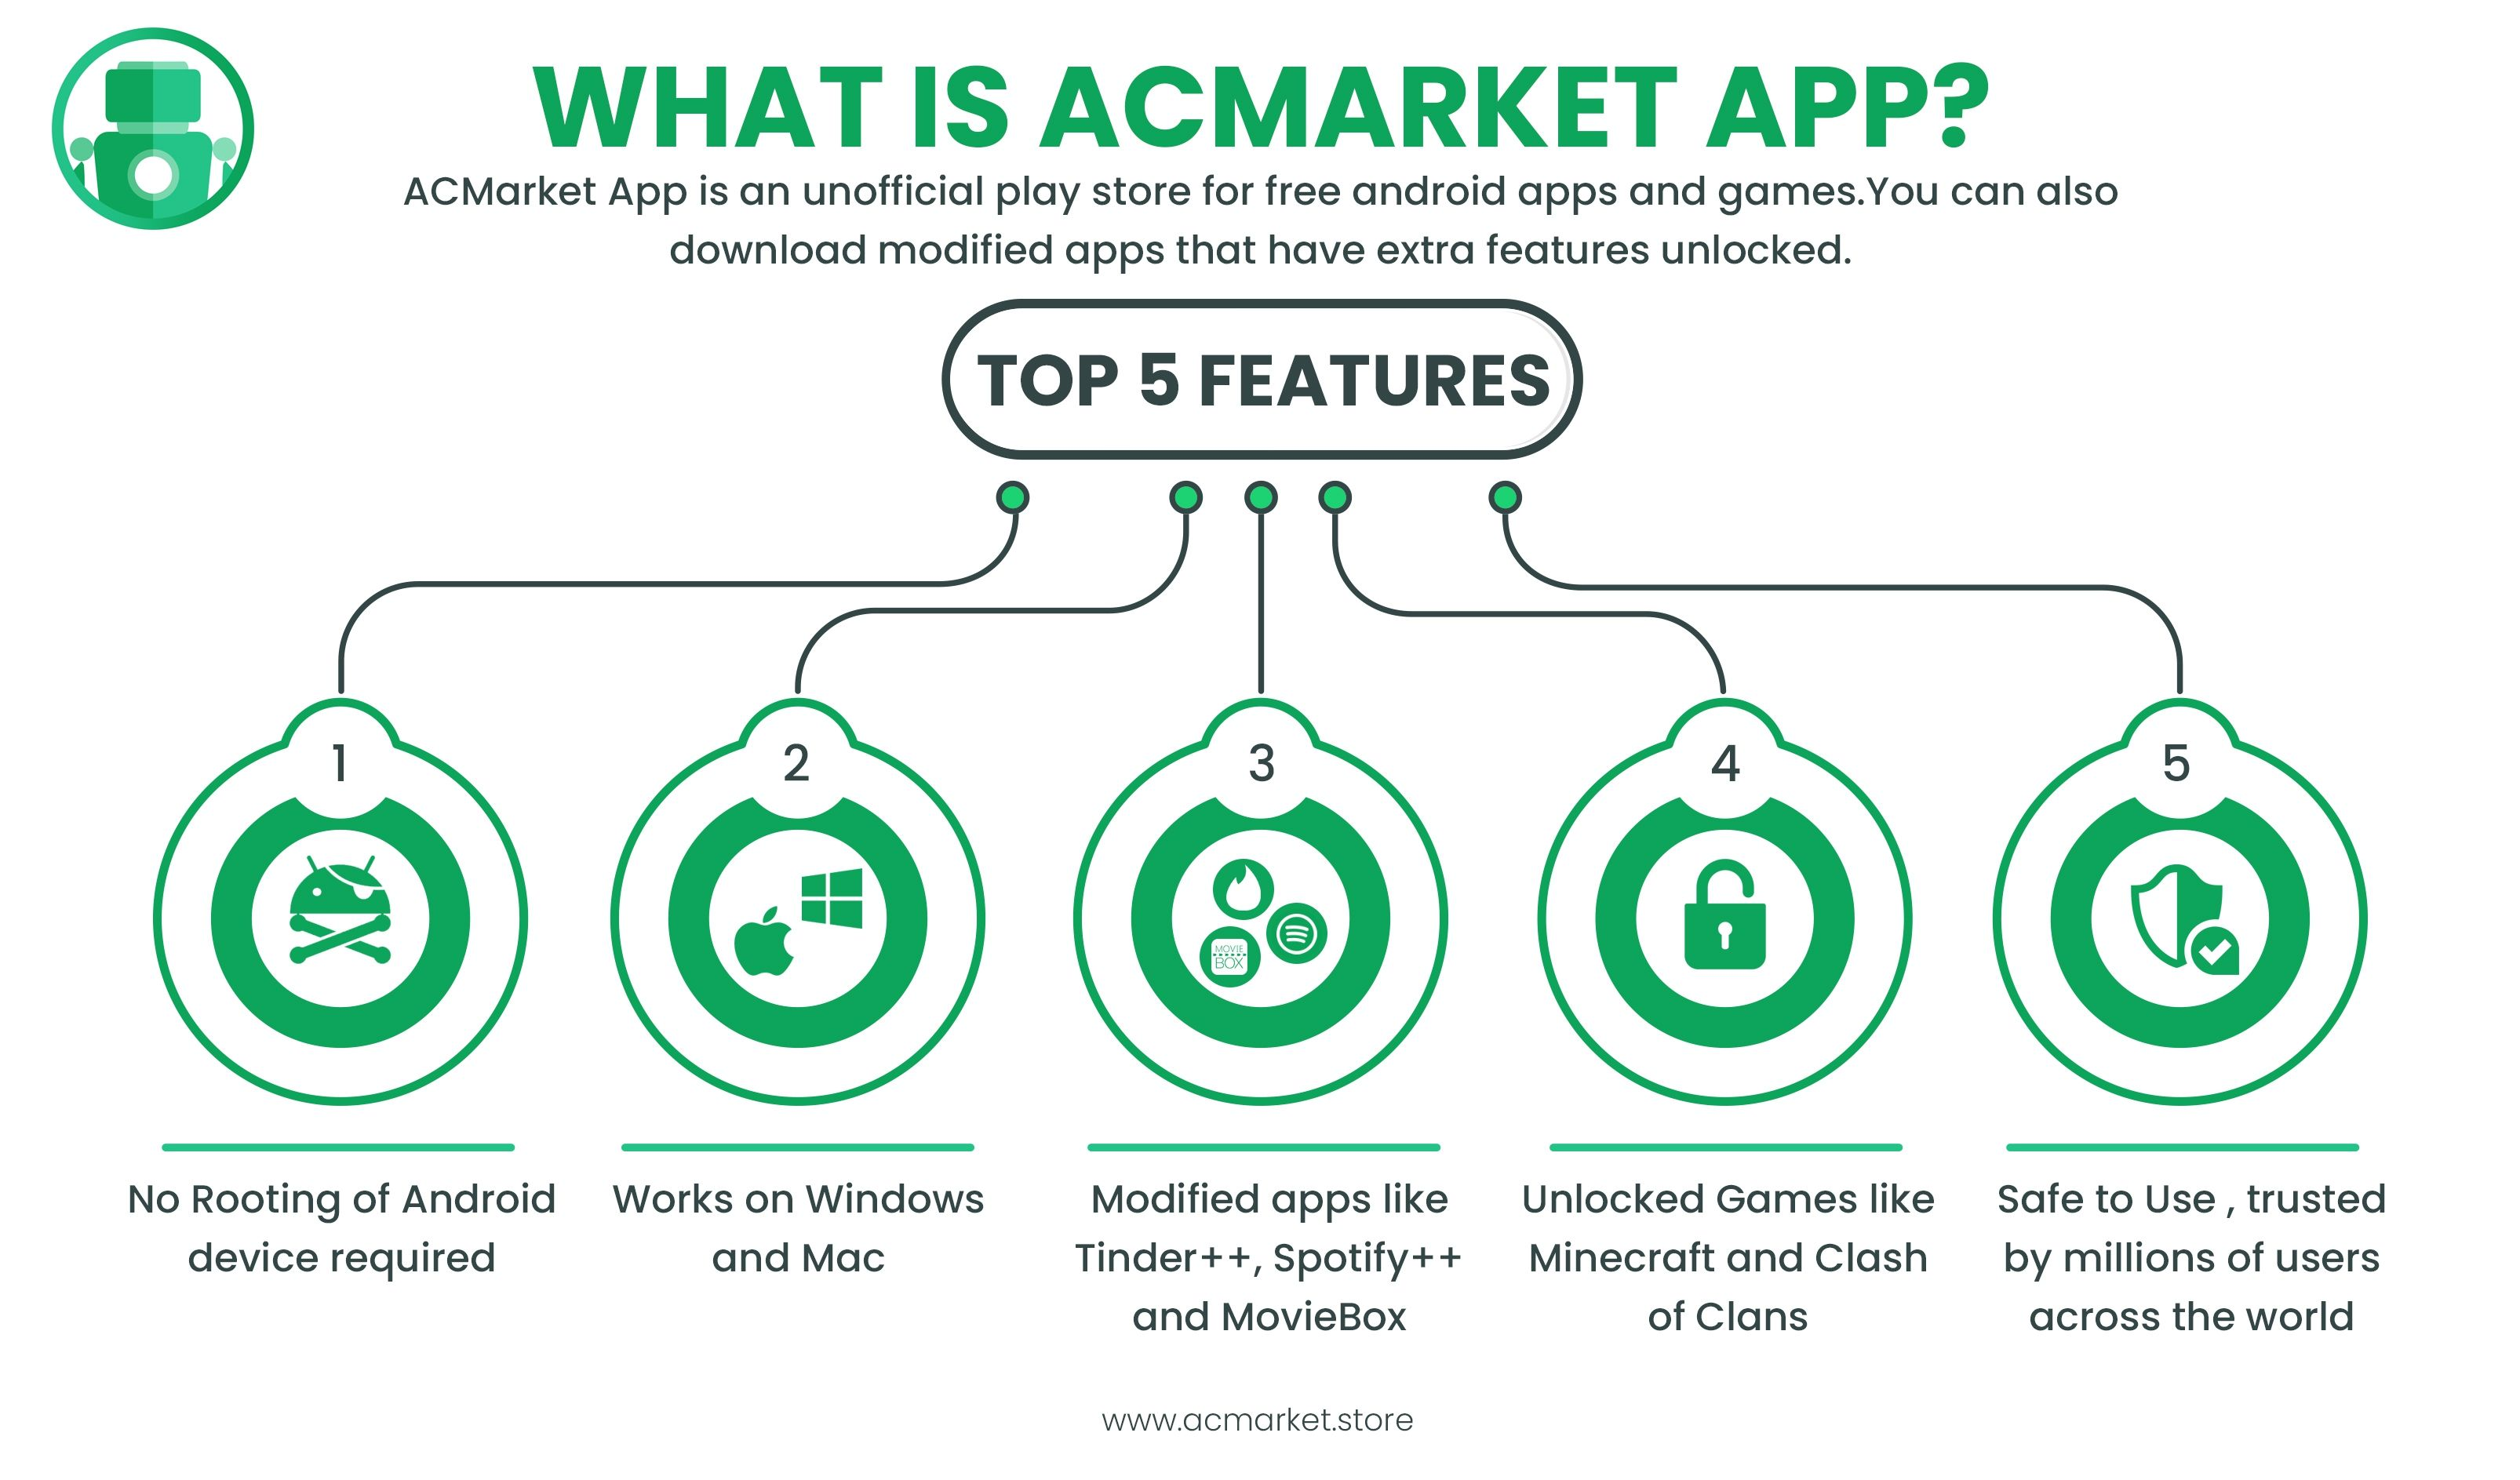 ACMarket is a thirdparty app store that enables you to